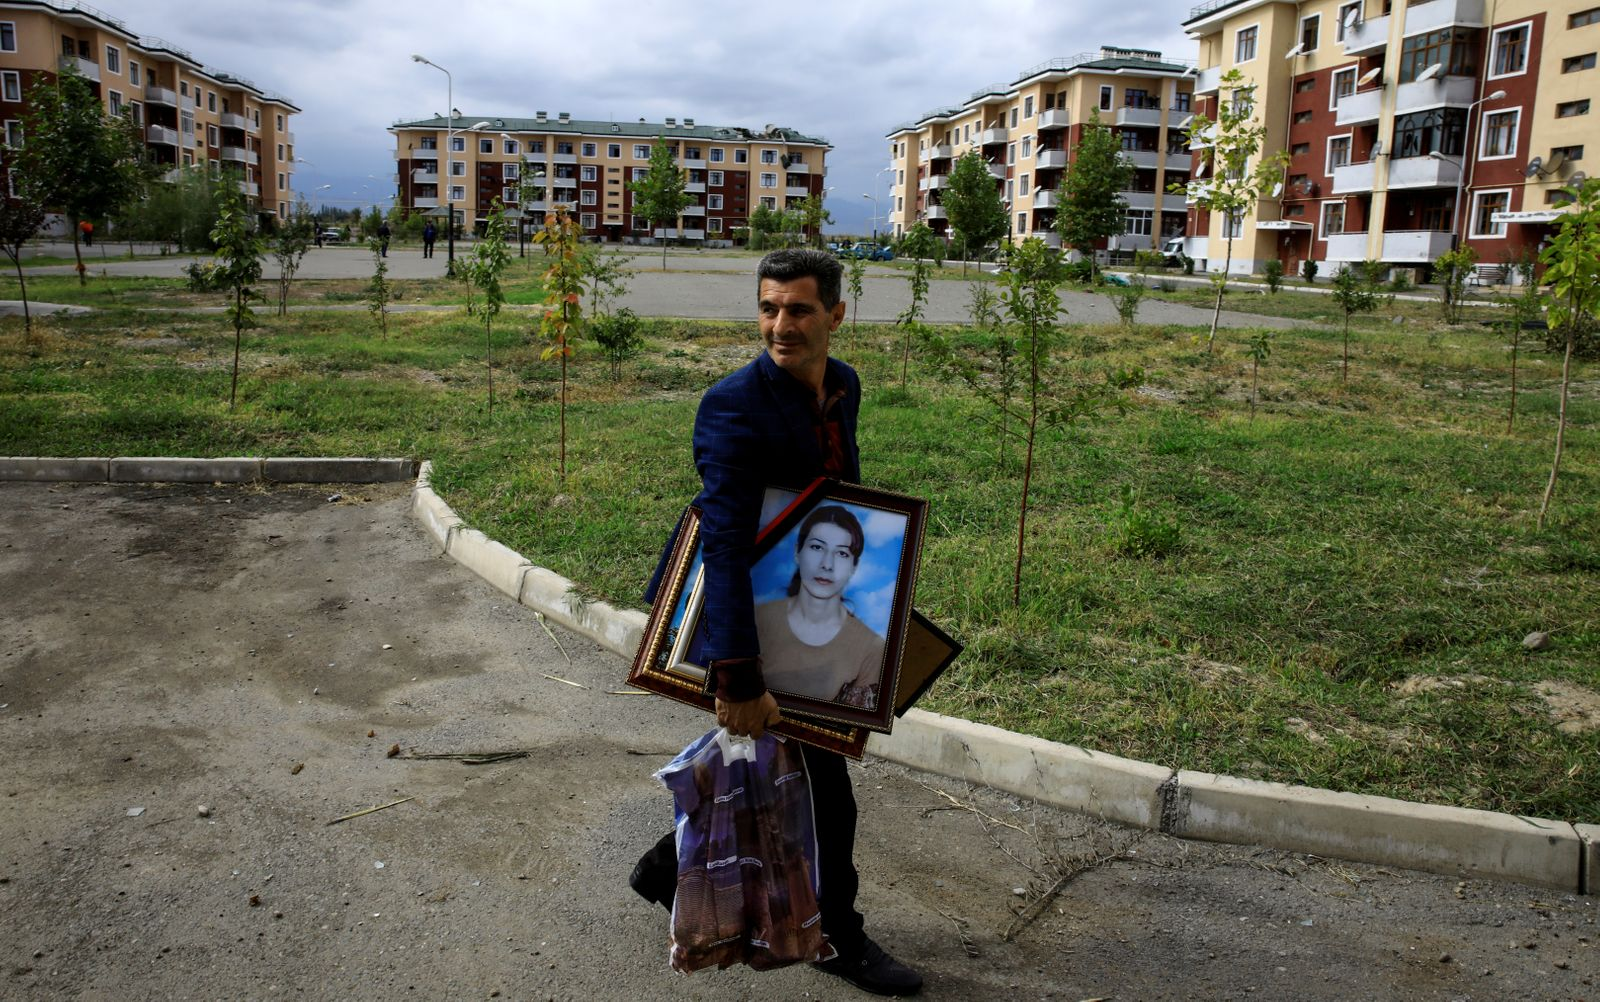 Iman Abisiv carries his belongings from his damaged home after a ceasefire begins during the fighting over the breakaway region of Nagorno-Karabakh in the city of Terter